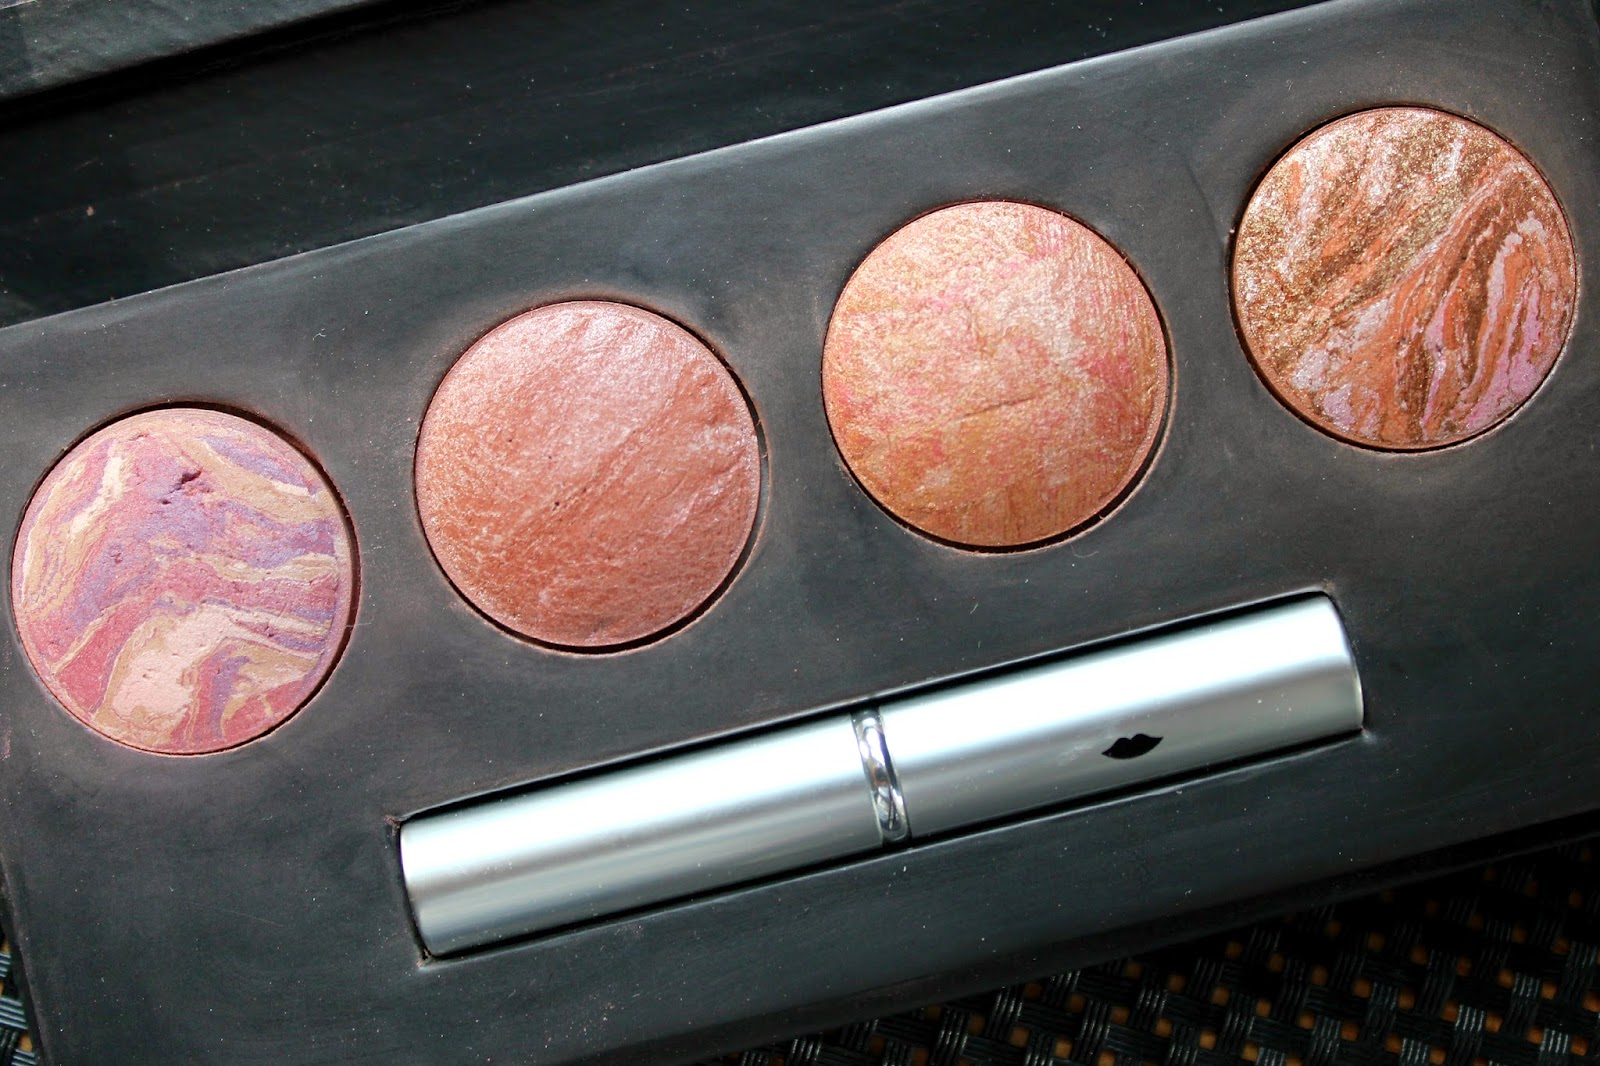 A picture of the Laura Geller Baby Cakes Baked Blush Palette